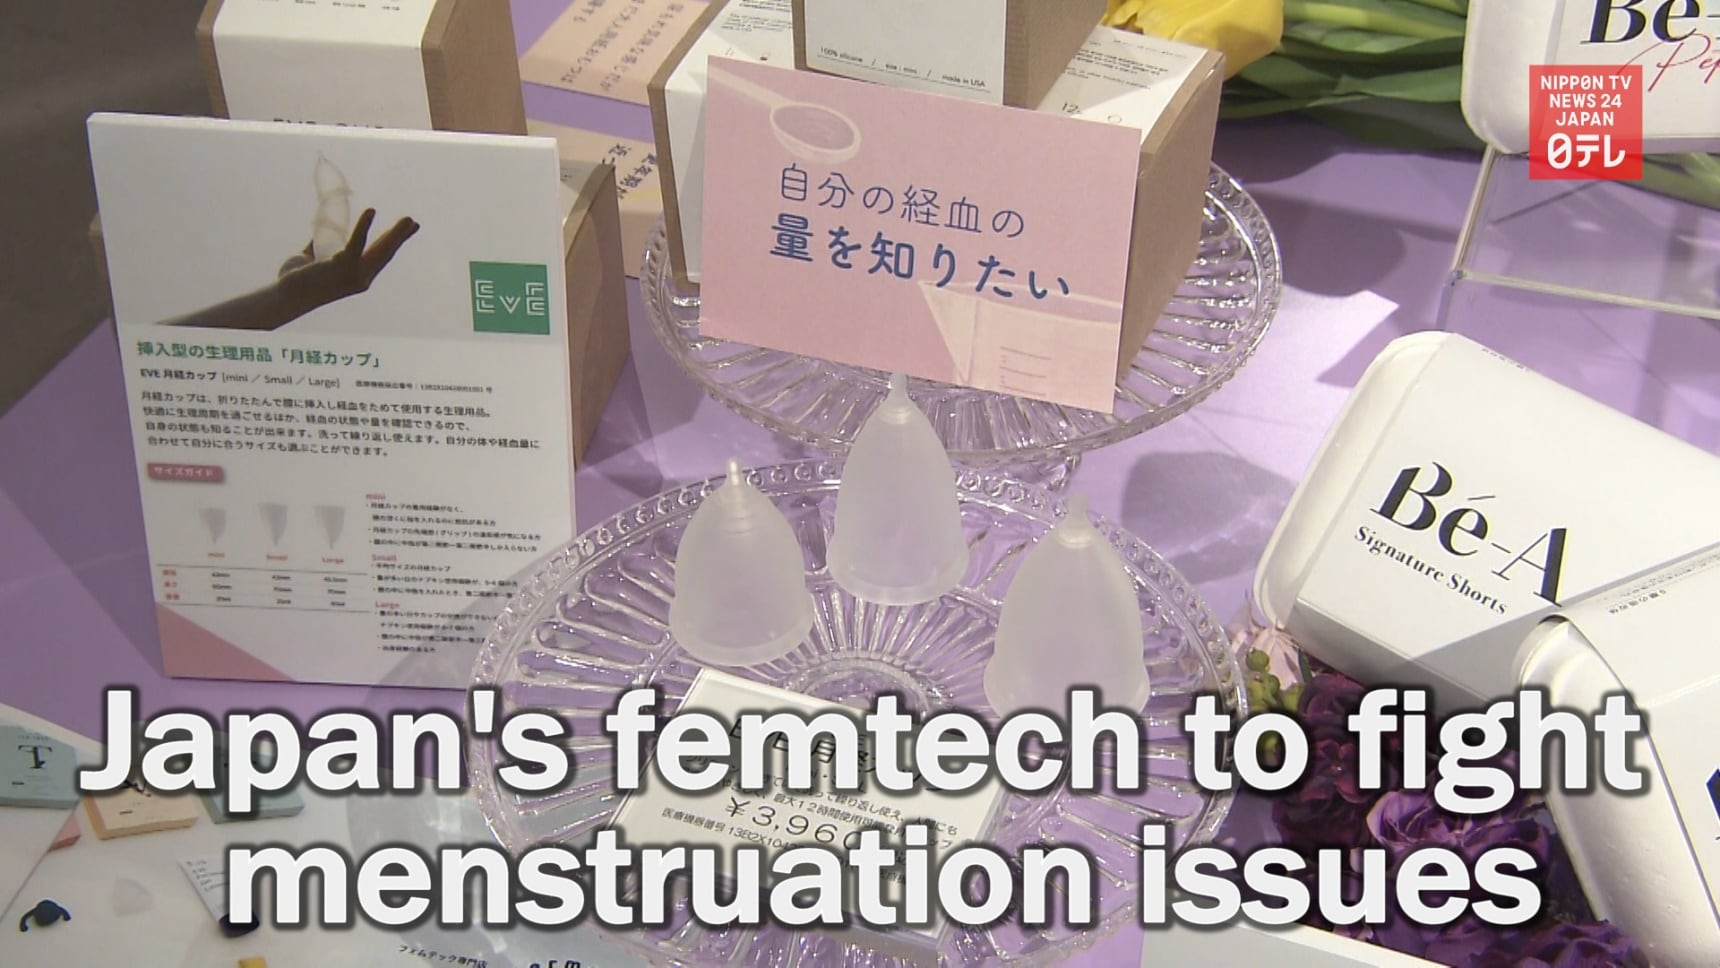 Femtech to Fight Menstruation Issues